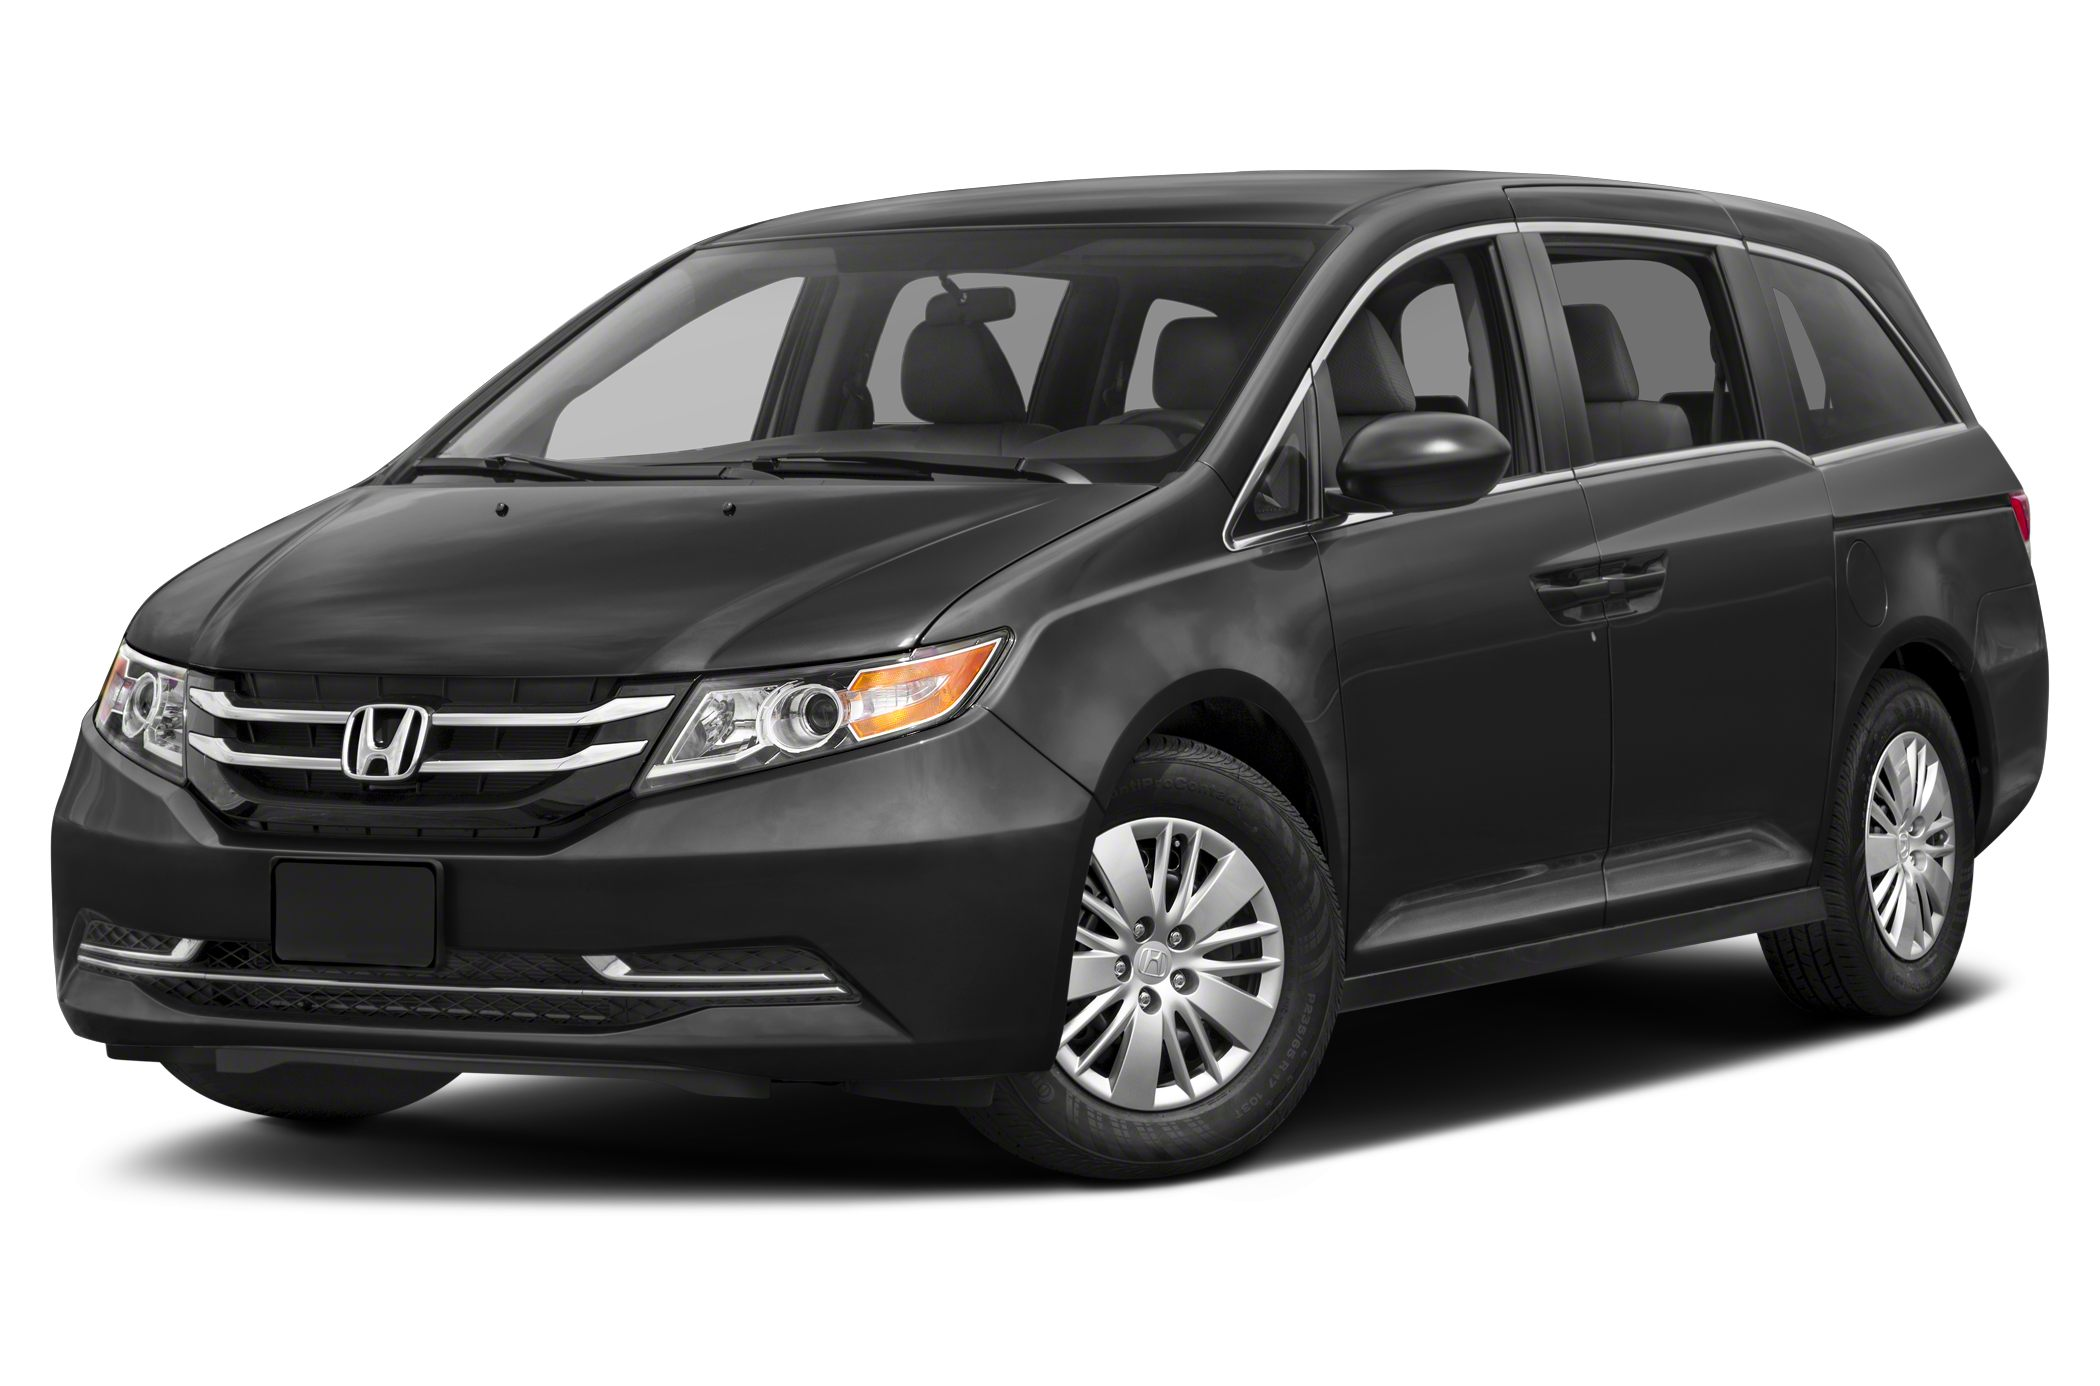 on sale in japan honda won t bring 31k odyssey hybrid to us   autoblog